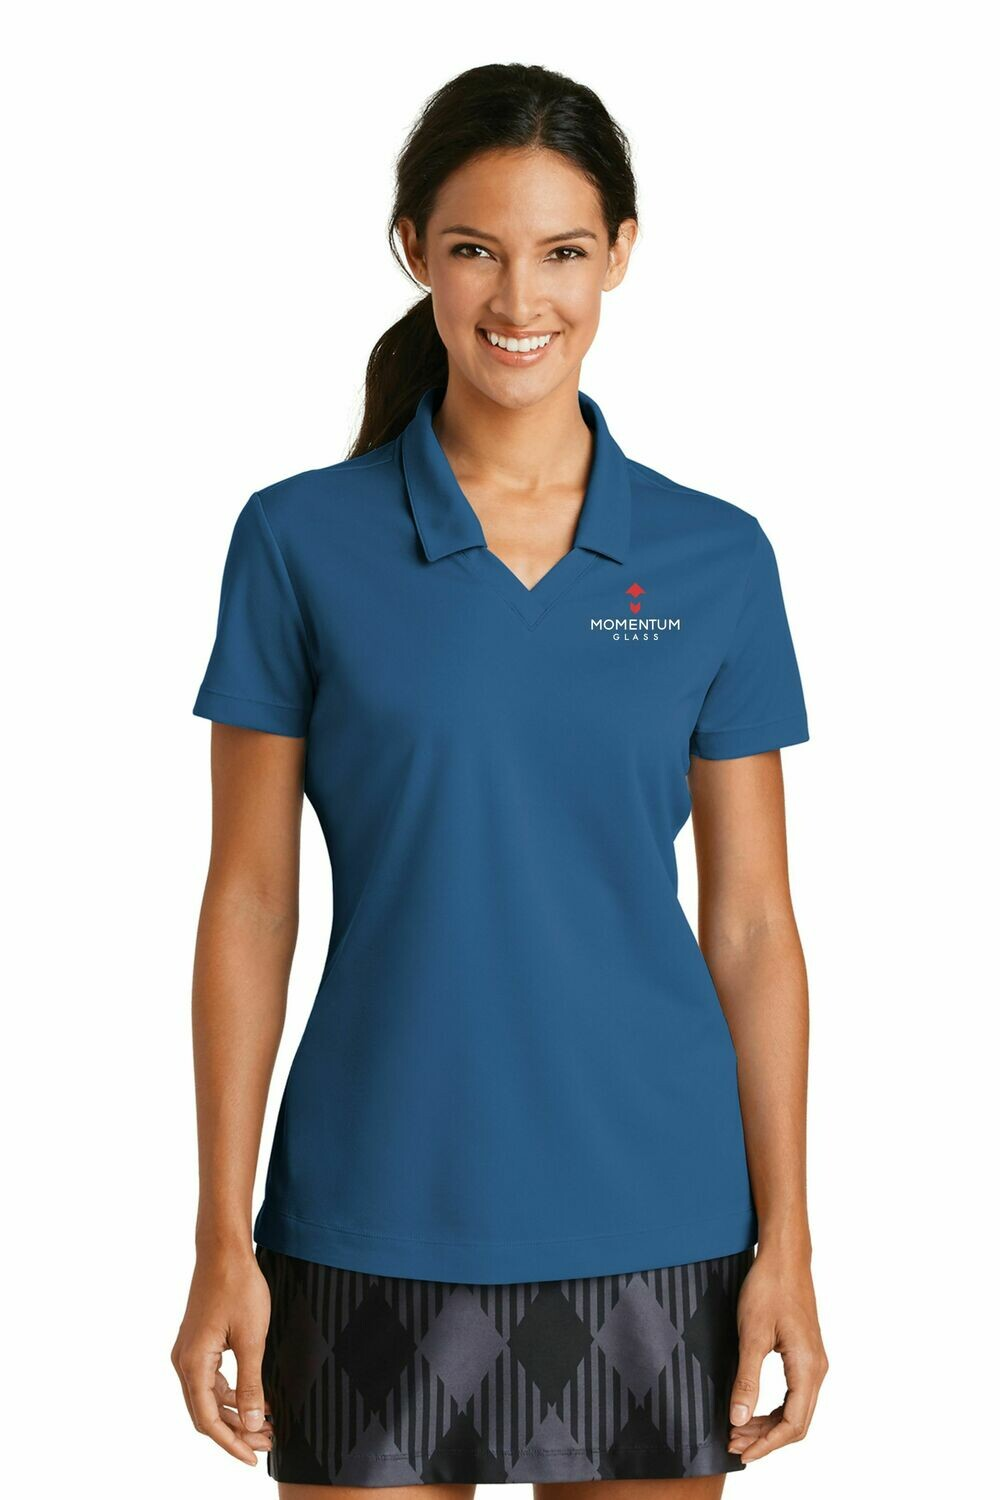 Nike Ladies Dri-FIT Micro Pique Polo - available in 2 colors